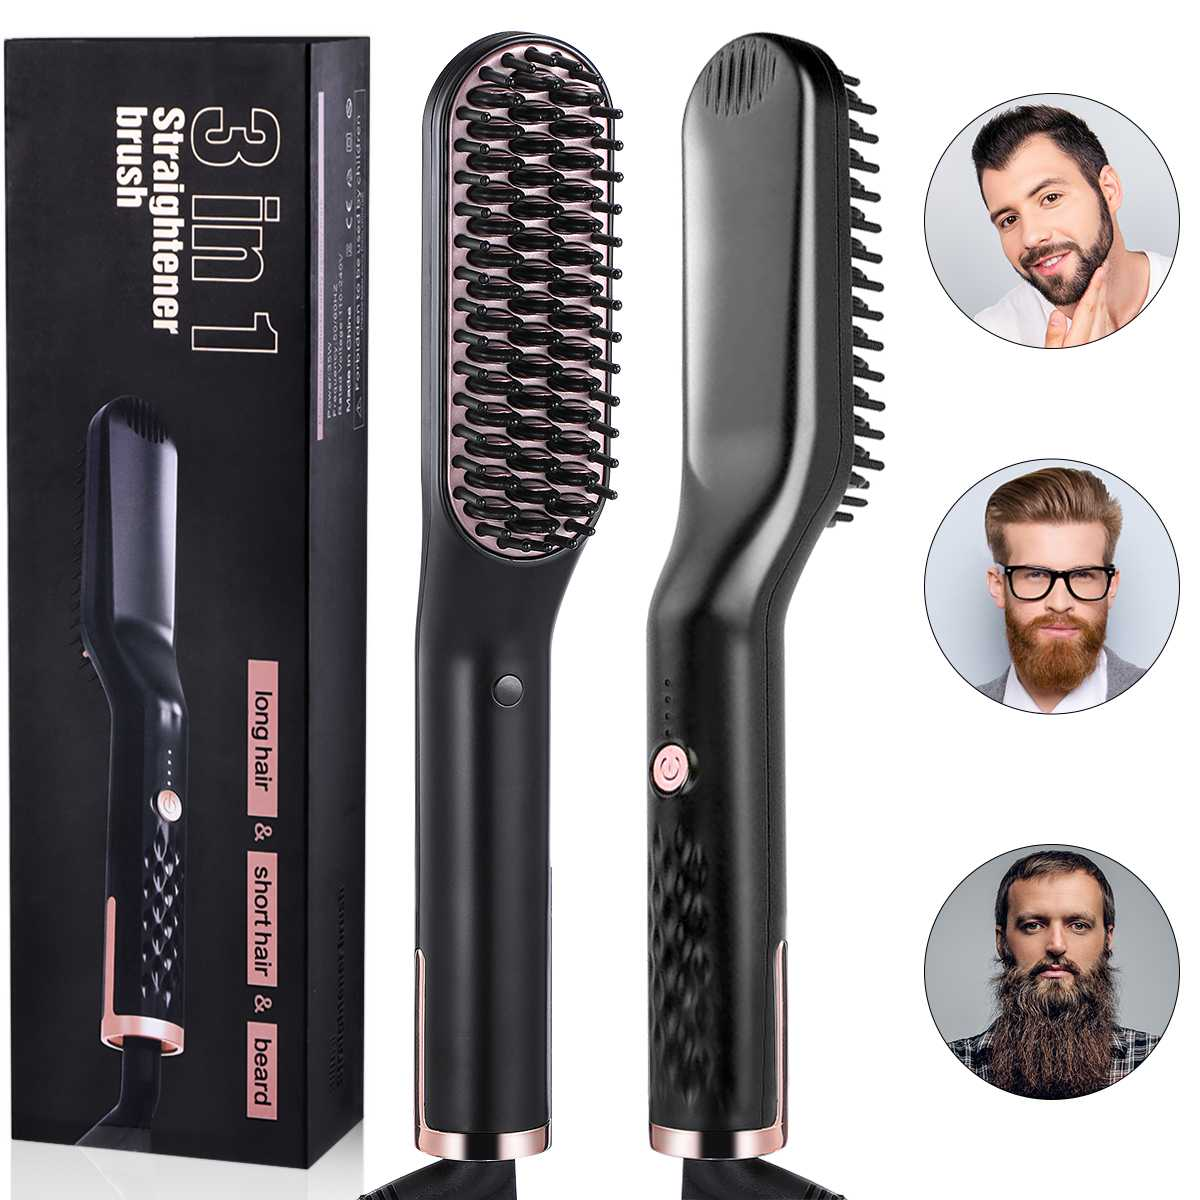 Liaboe 3 In 1 Professional Fast Heating Styling Iron Comb For Beard Hair Ceramic Portable Multifunctional Straightener Curler